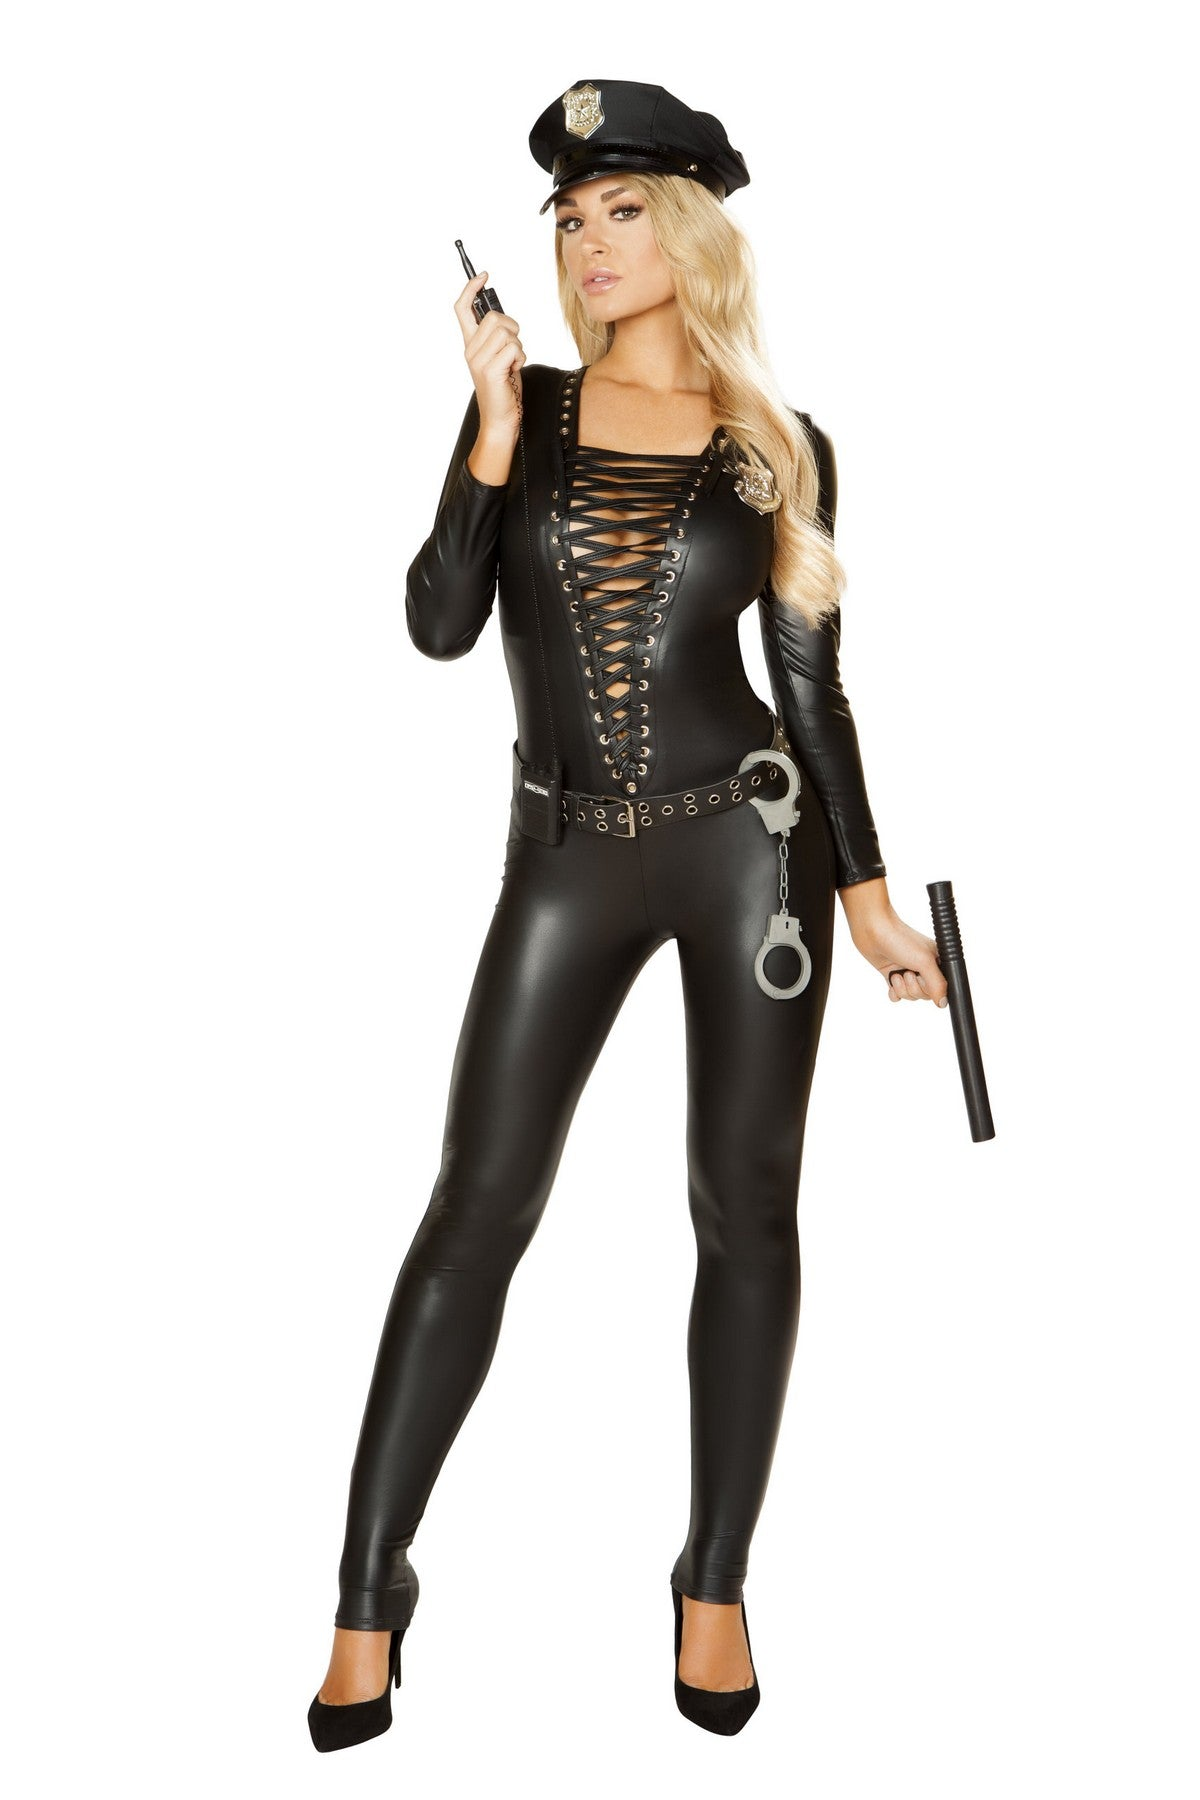 Sexy Black Multi-Purpose Catsuit Costume